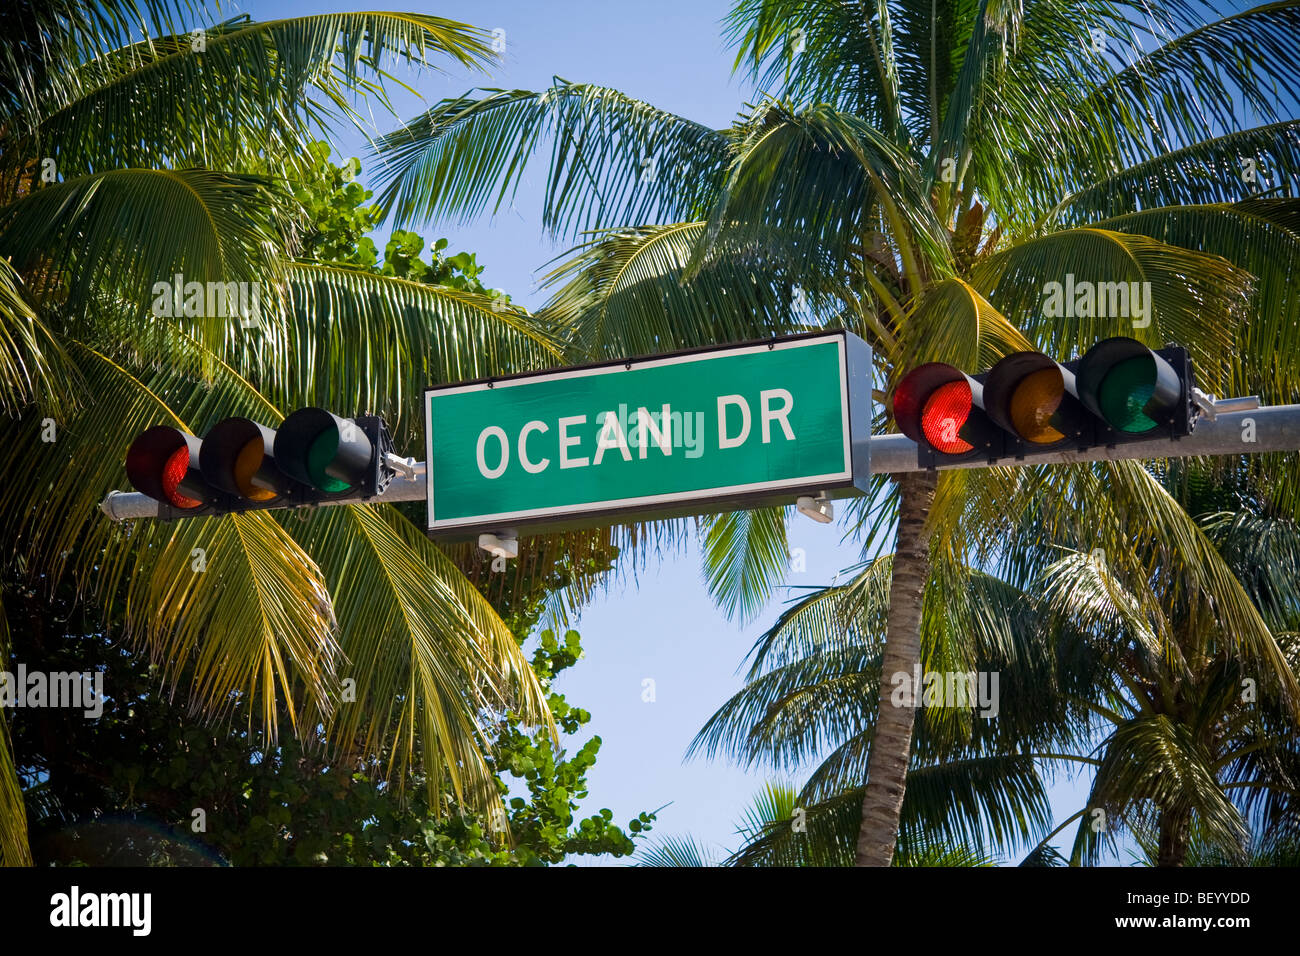 Sign post for Ocean drive, south beach, Miami, Florida, USA - Stock Image